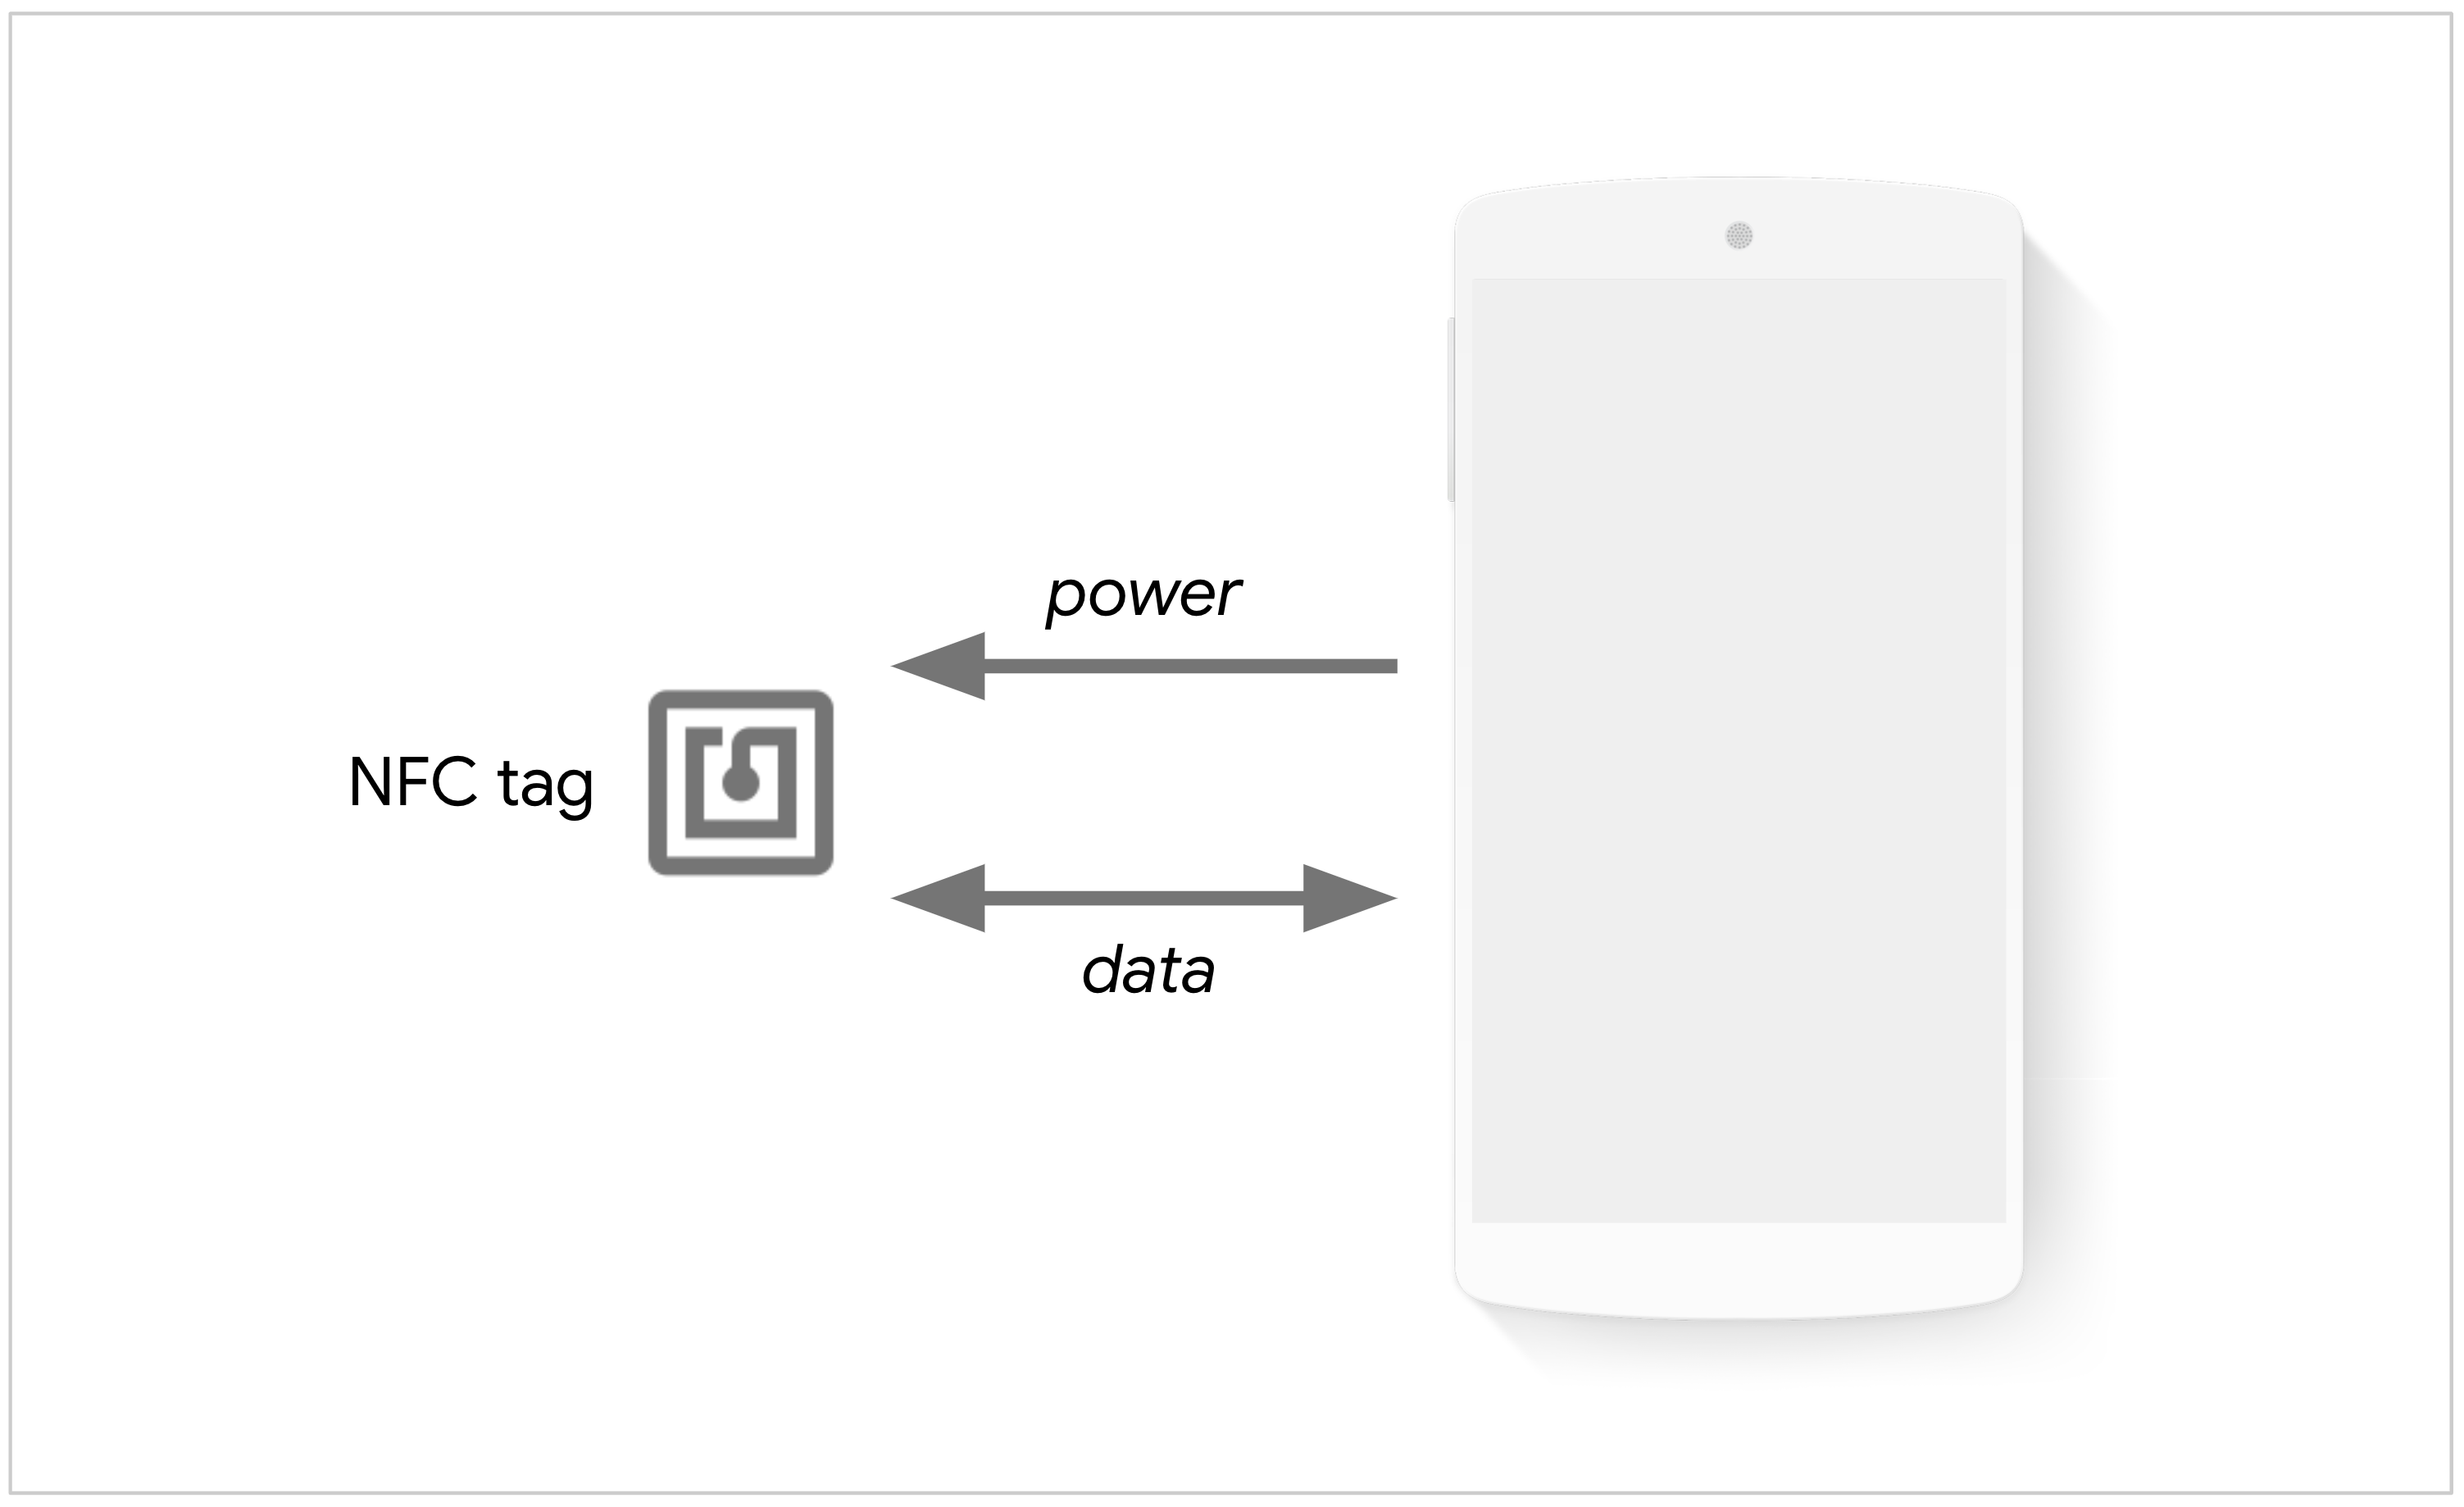 Phone powering up an NFC tag to exchange data